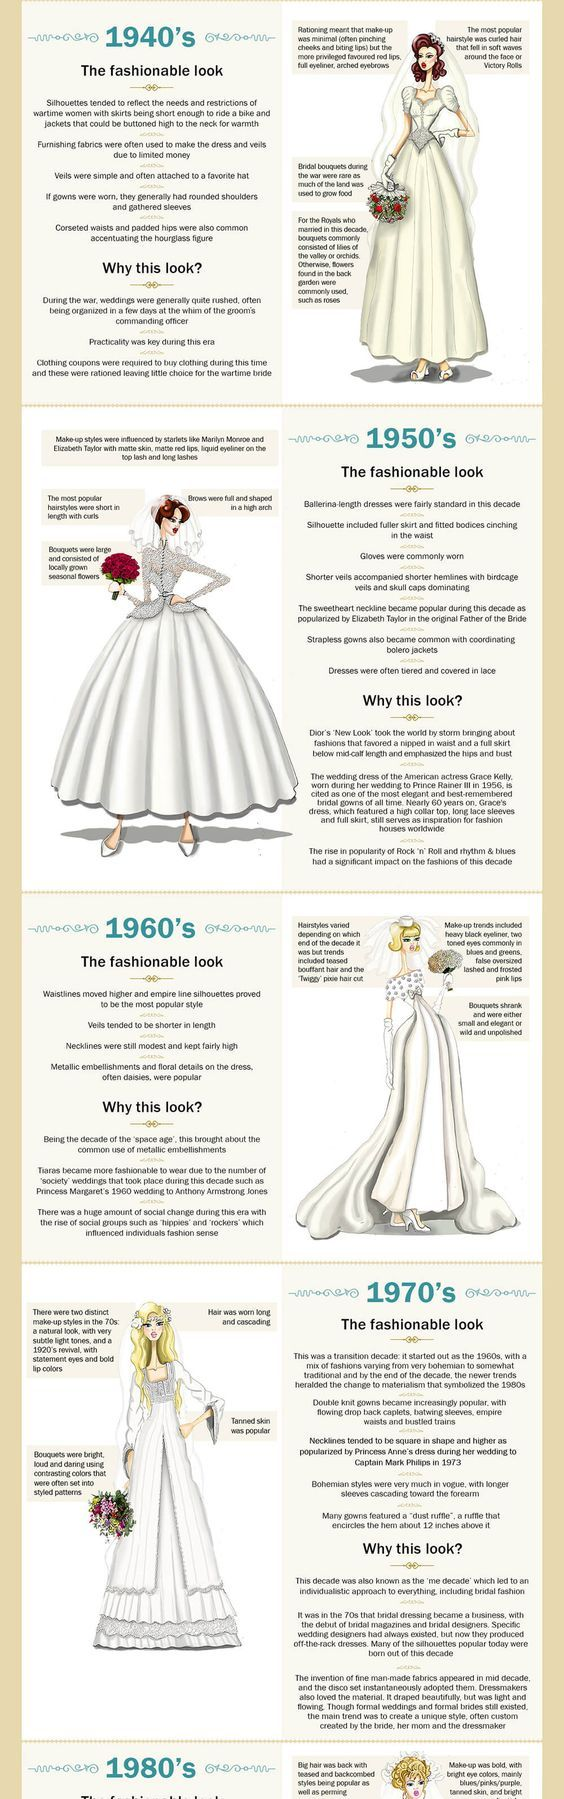 Wedding Dresses Through Time graph chart info history 40s 50s 60s bride long white dress gown color illustration vintage fashion - *Explore some Amazing Wedding Invitation Matching Sets by Visiting www.zazzle.com/...